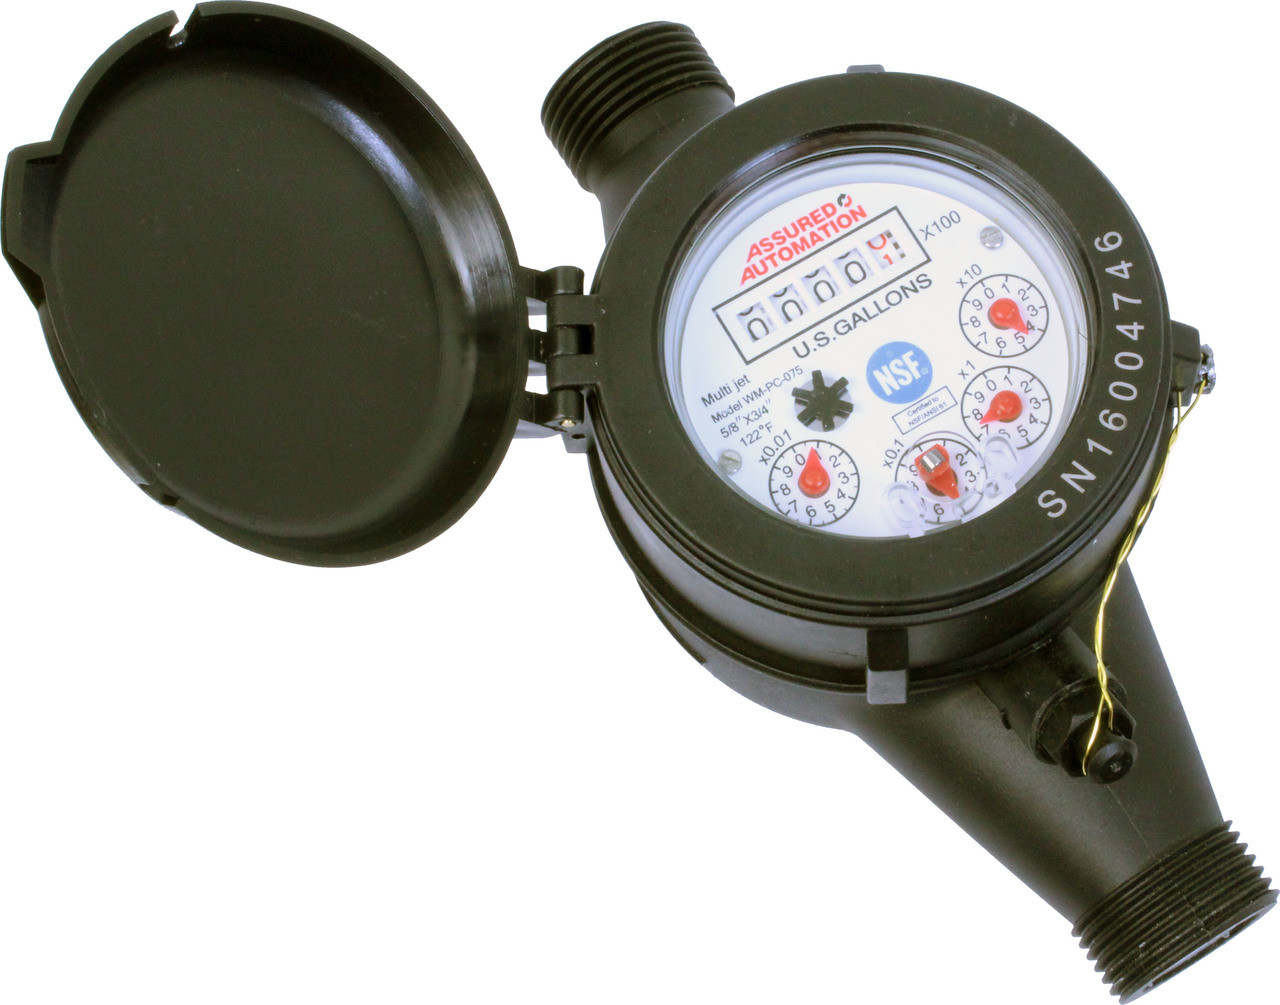 Residential Water Meter / Water Meter Beverages